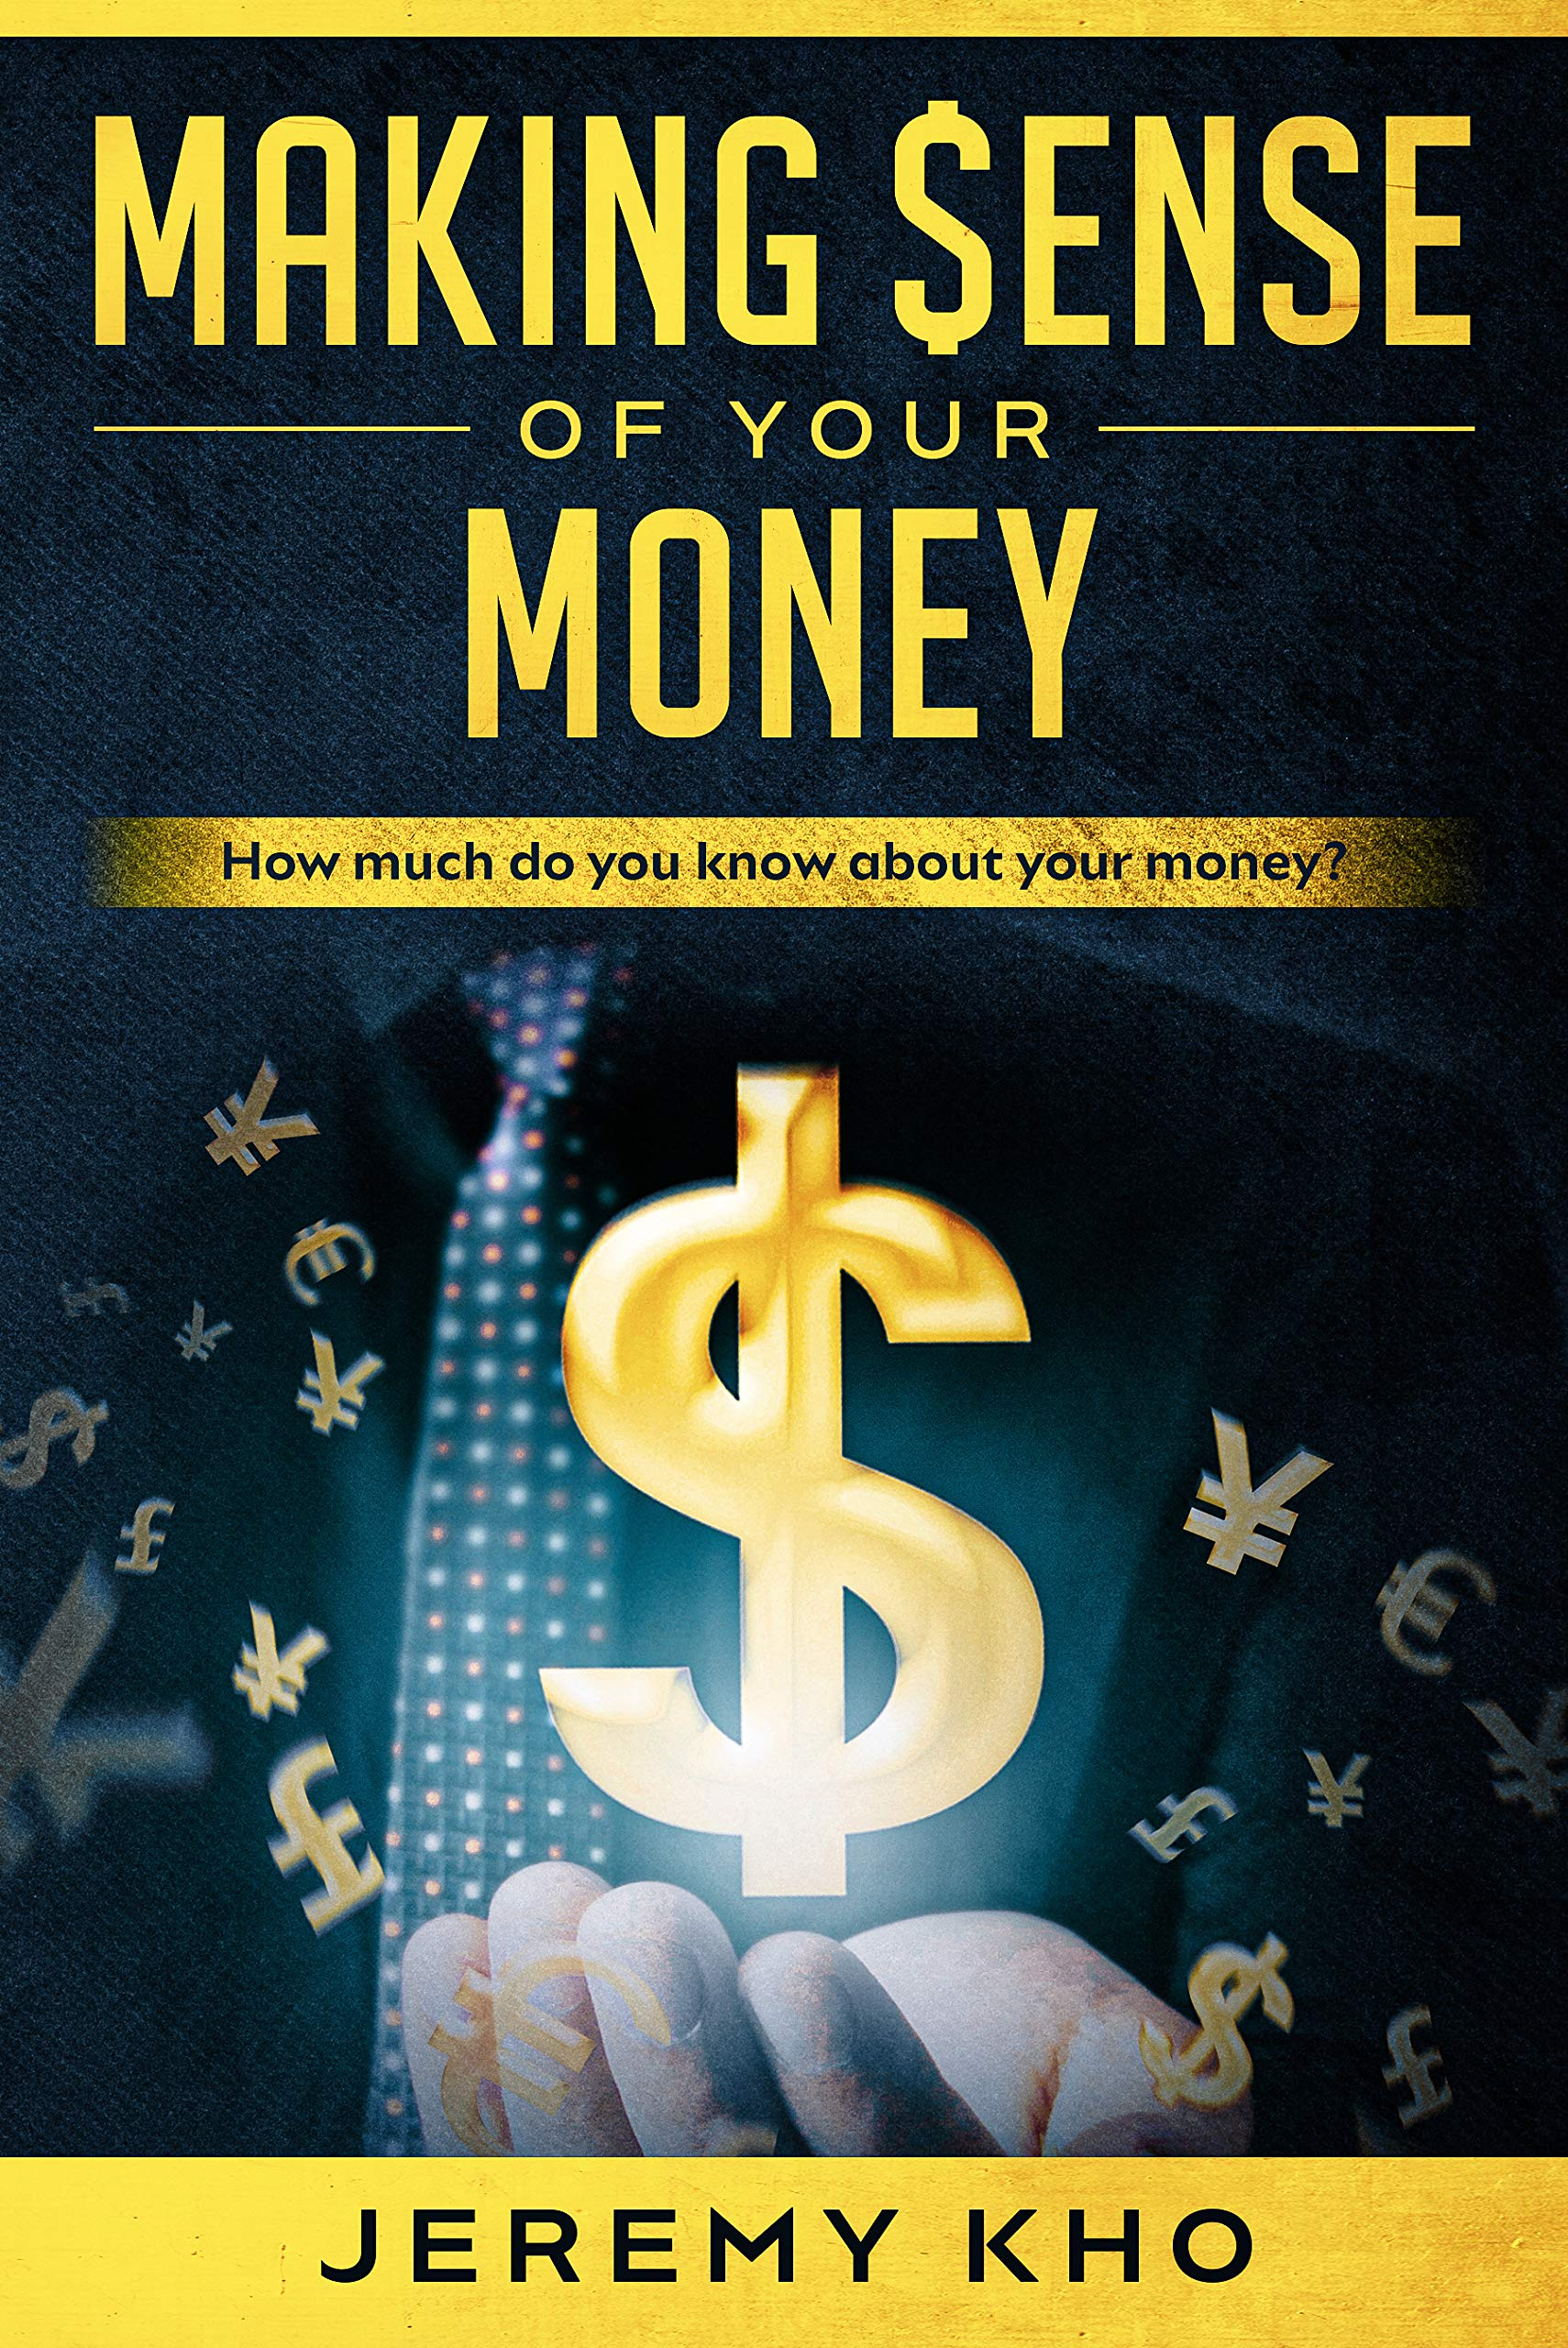 MAKING $ENSE OF YOUR MONEY: HOW MUCH DO YOU KNOW ABOUT YOUR MONEY?